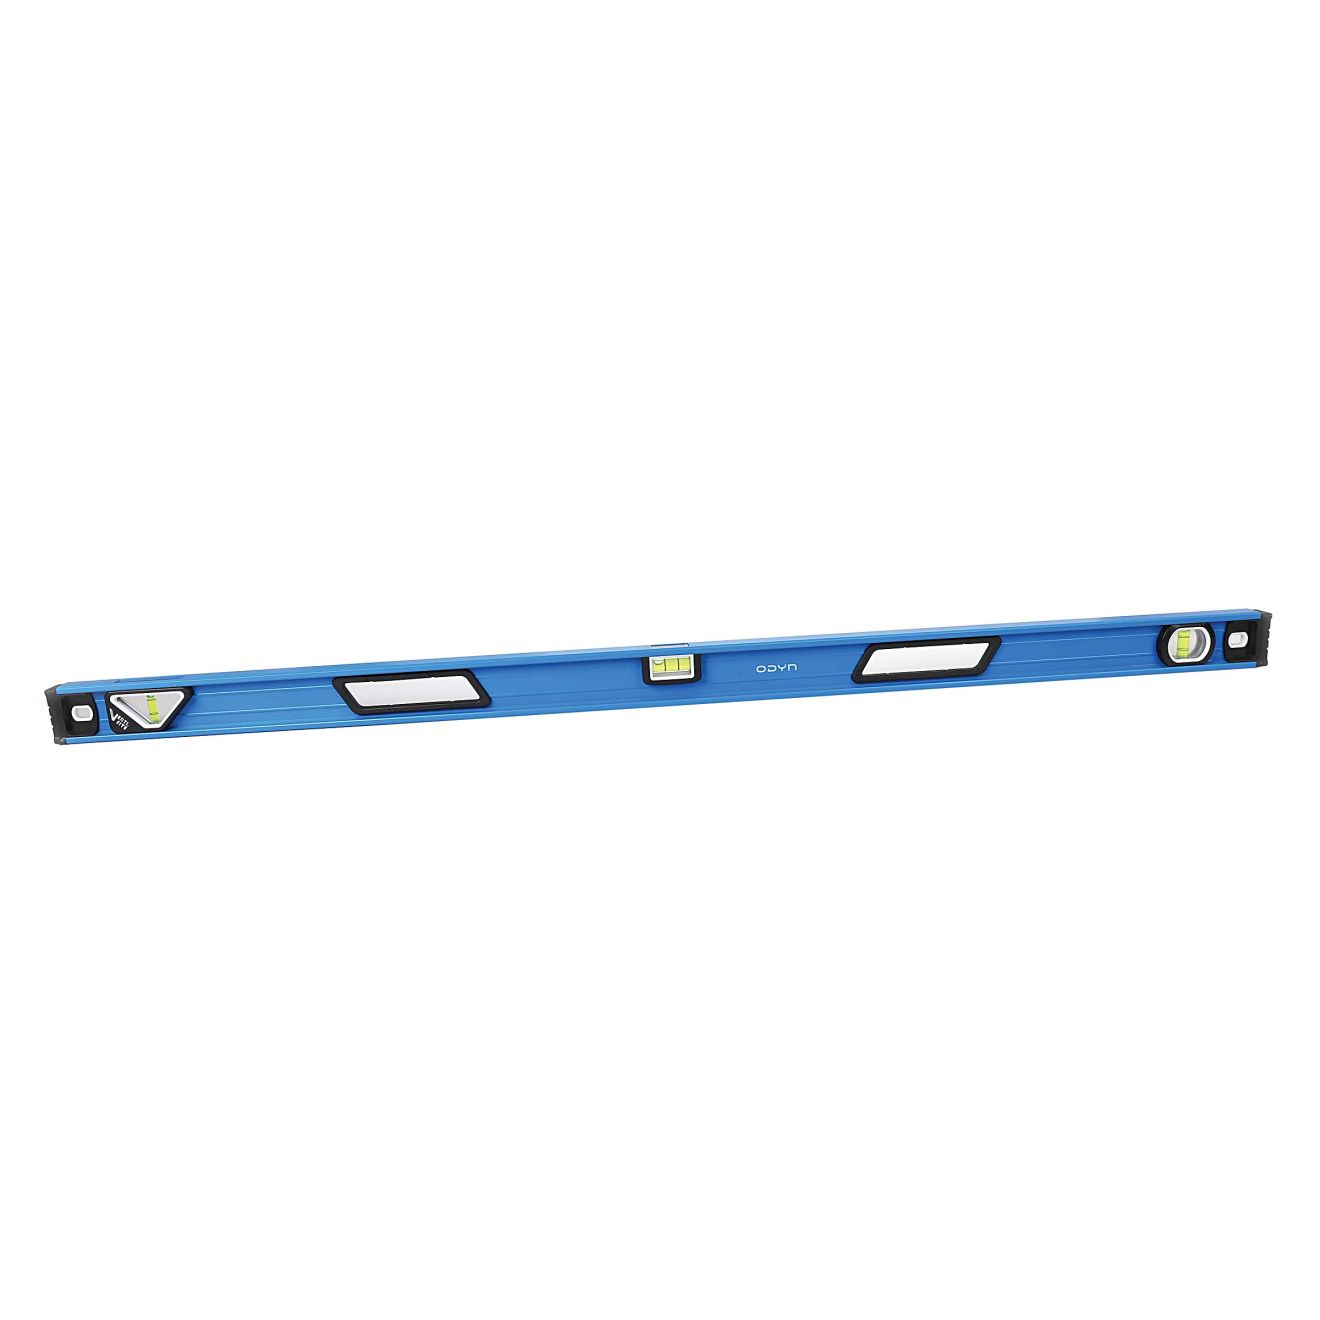 Odyn 48 in. I-Beam Level